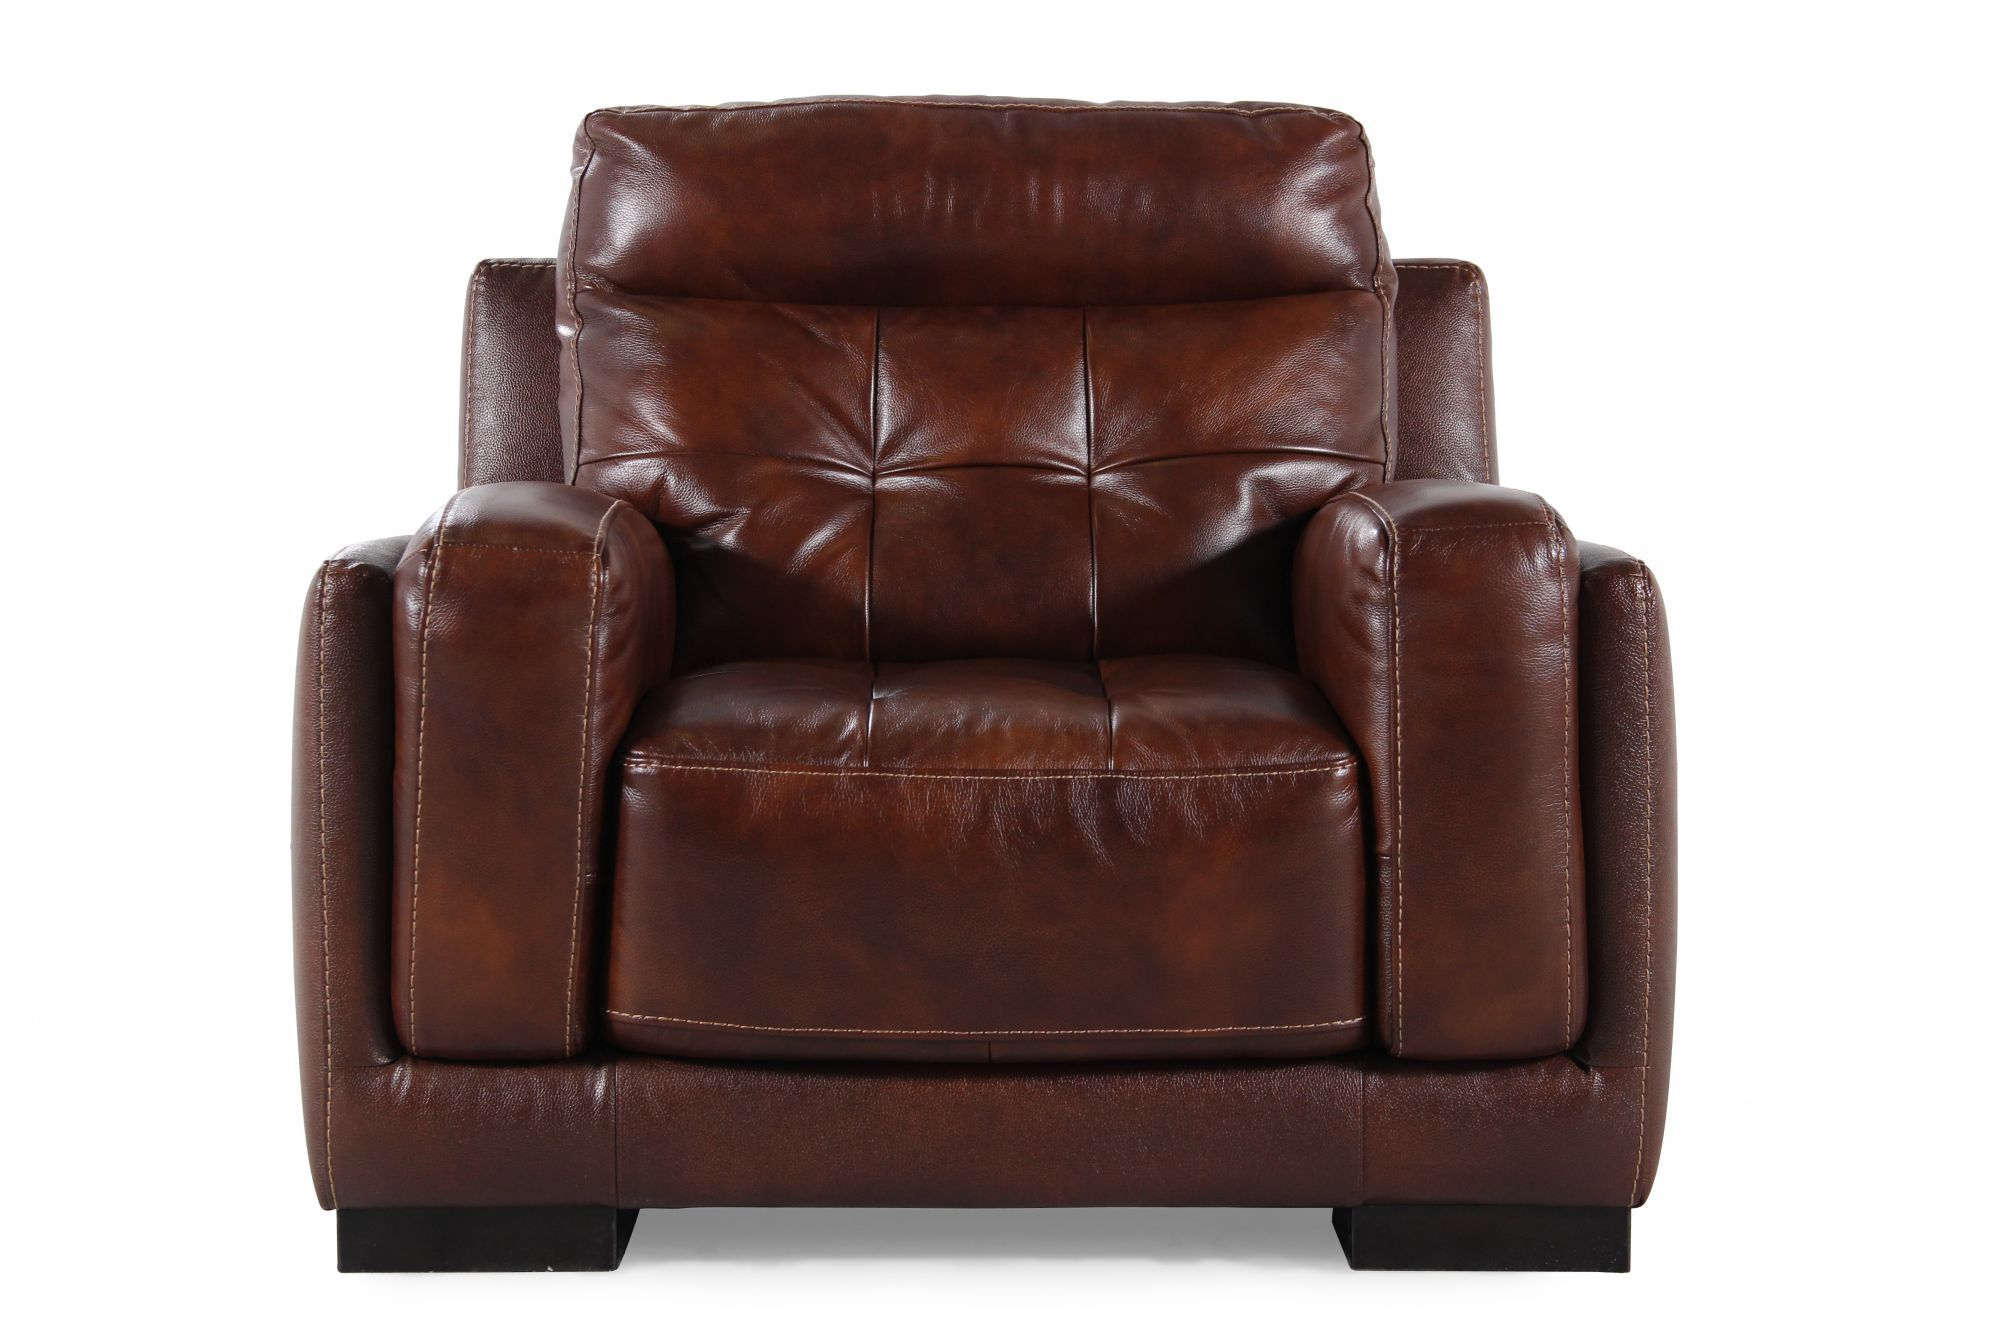 Tufted Leather Chair In Brown ...